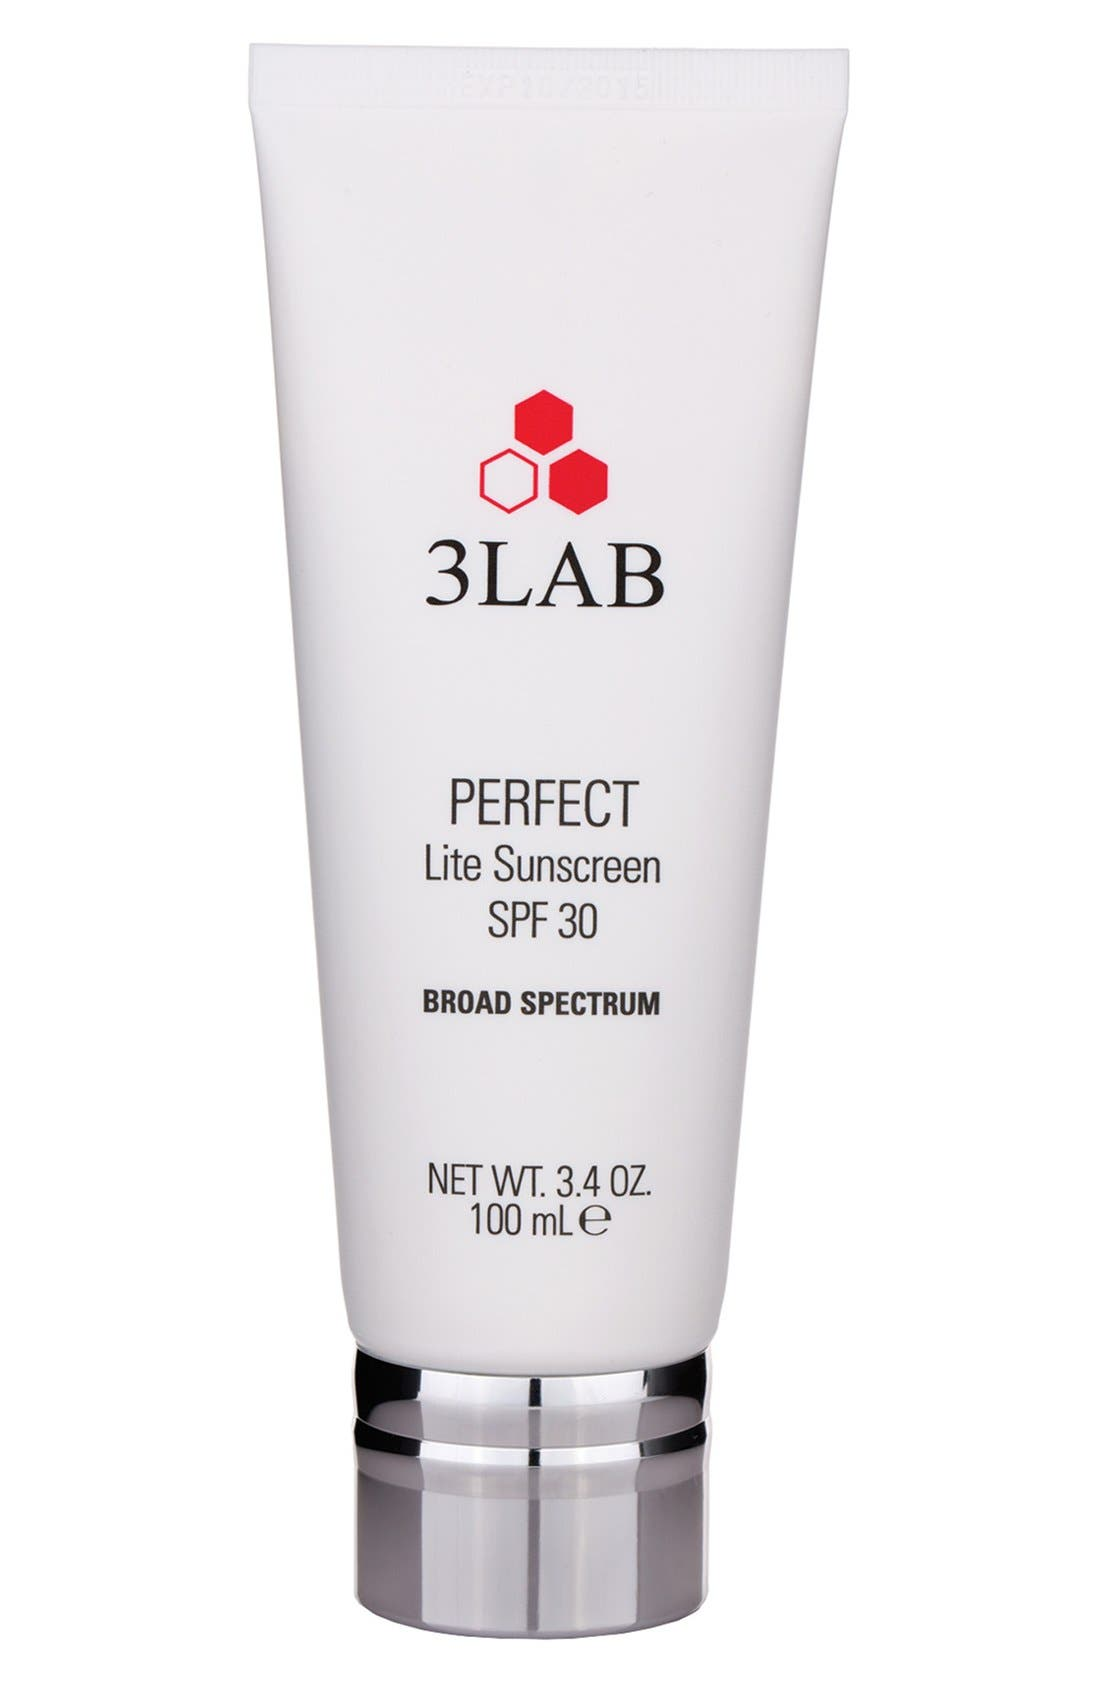 3LAB Perfect Lite Sunscreen SPF 30